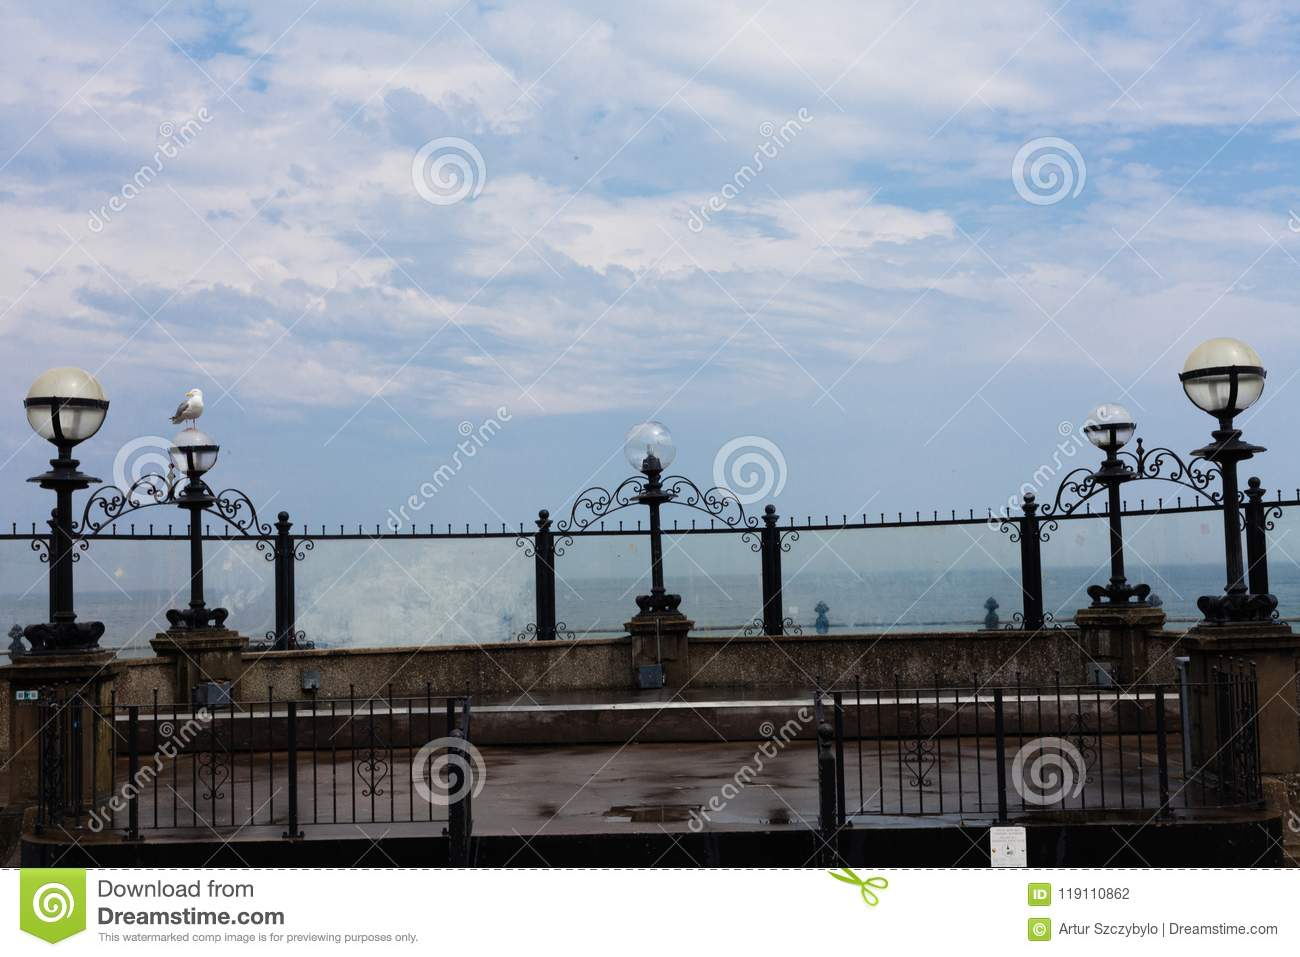 Seagull sits on the shore.Ocean waves hitting the seashore. Blue sky with clouds in the background. Light lamps on the seashore. C